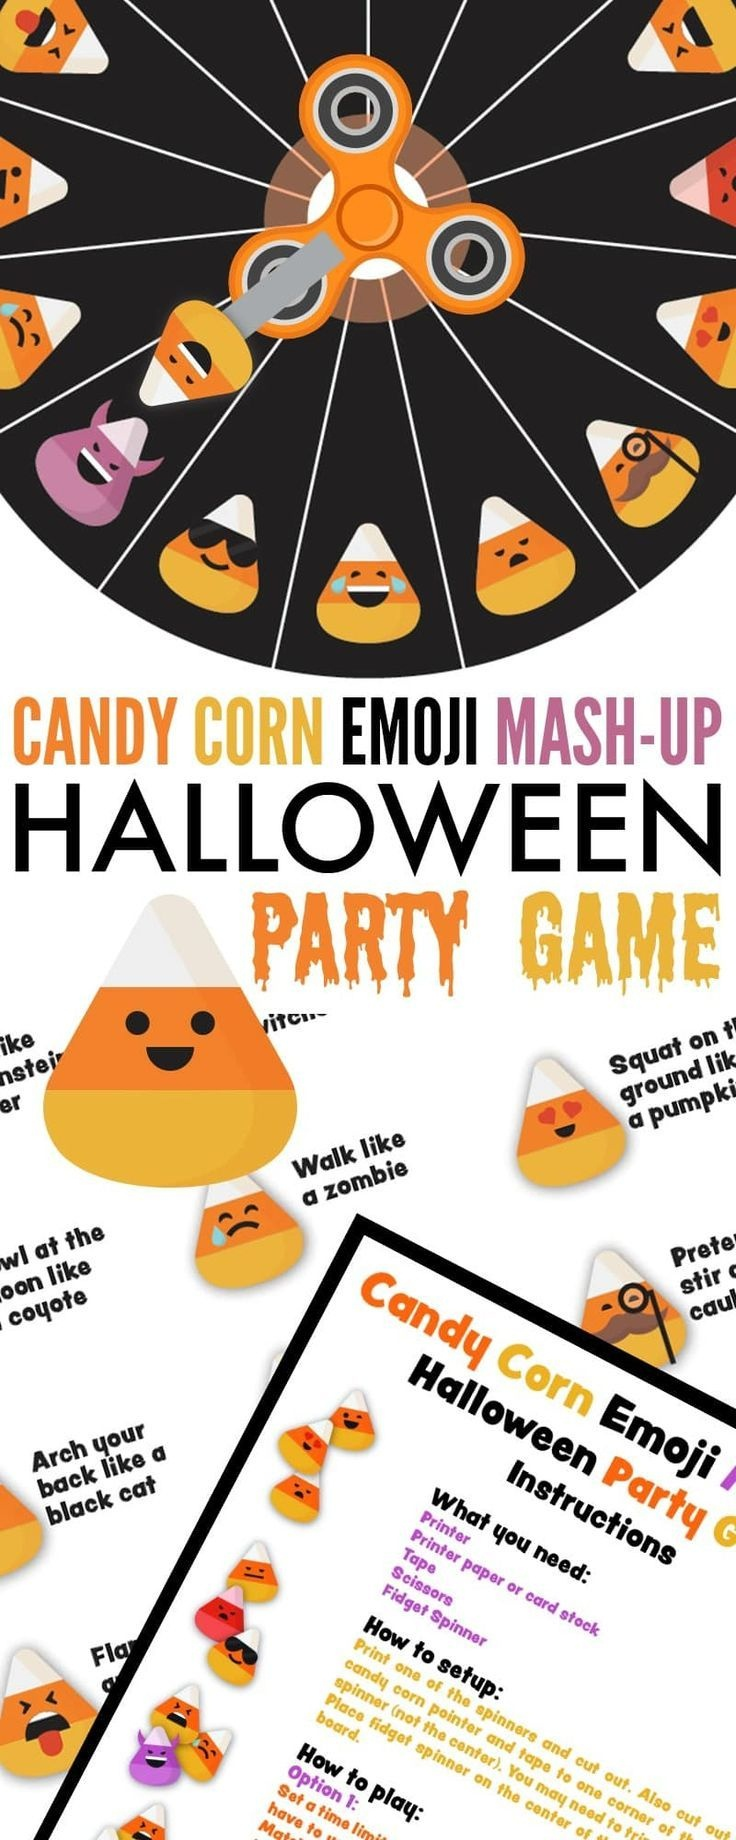 Candy Corn Emoji Mash-Up Halloween Party Game | Activities For Boys - Free Printable Halloween Party Games